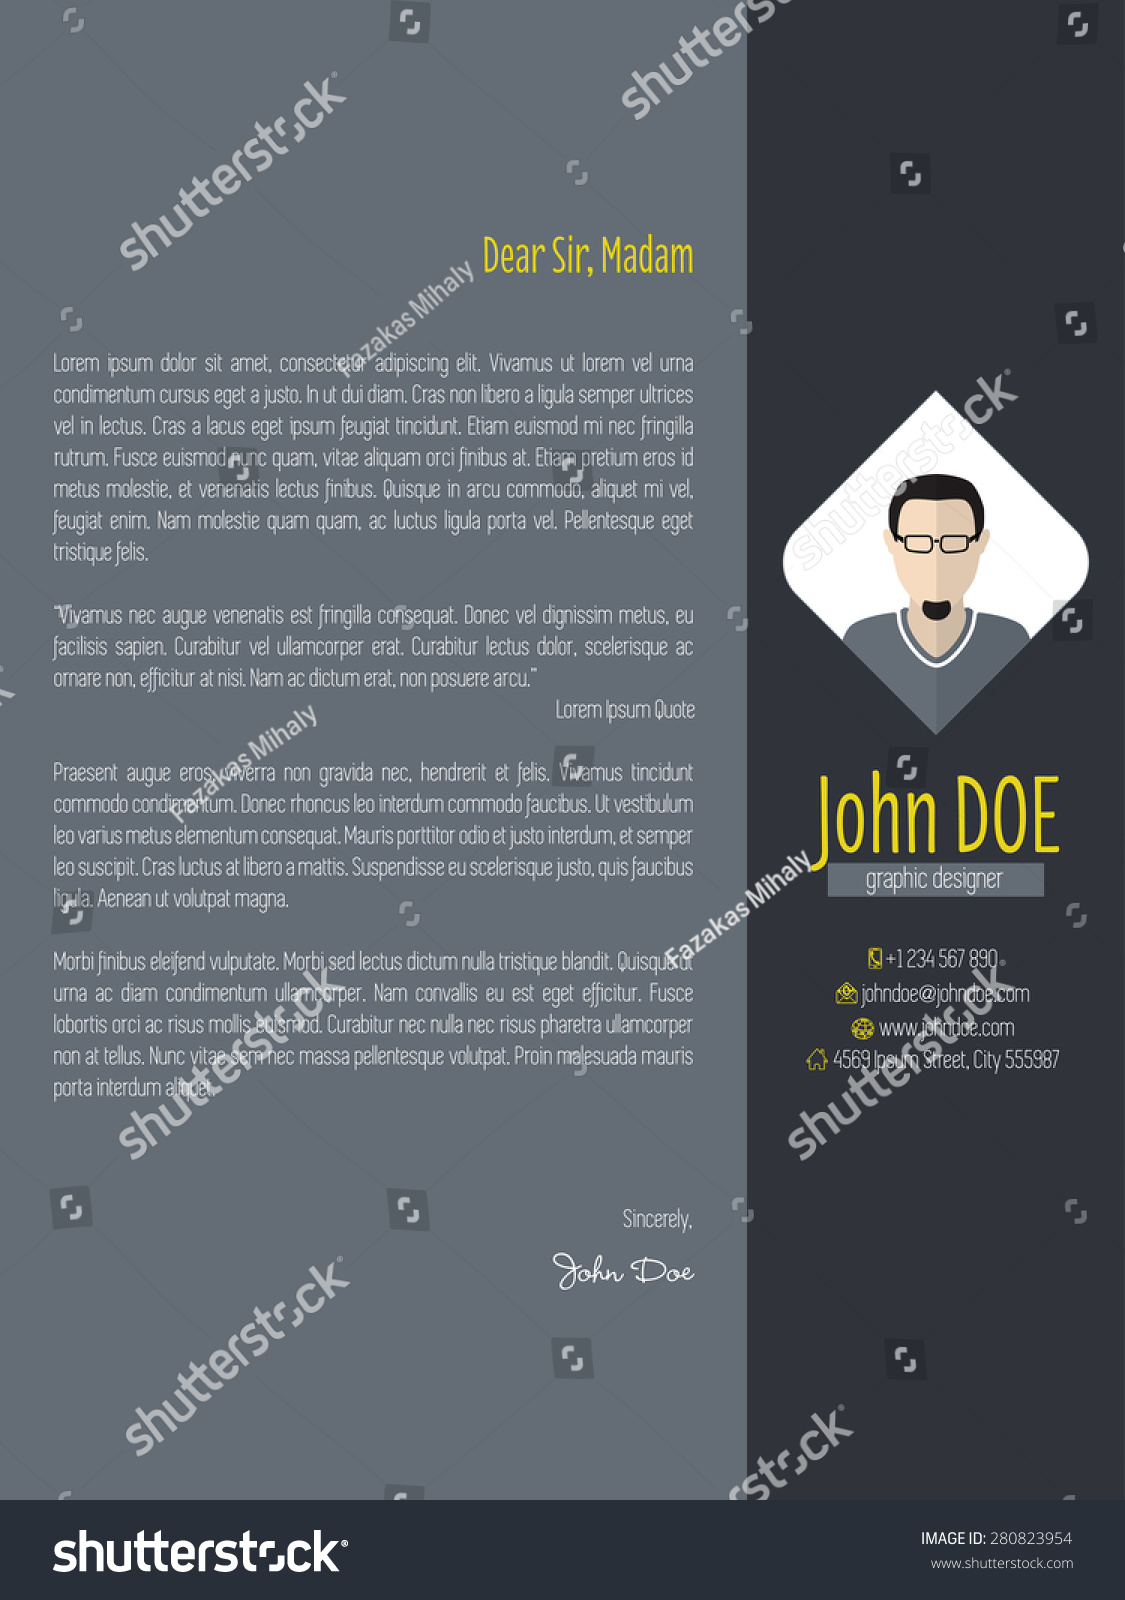 Modern Cover Letter Design With Dark Background